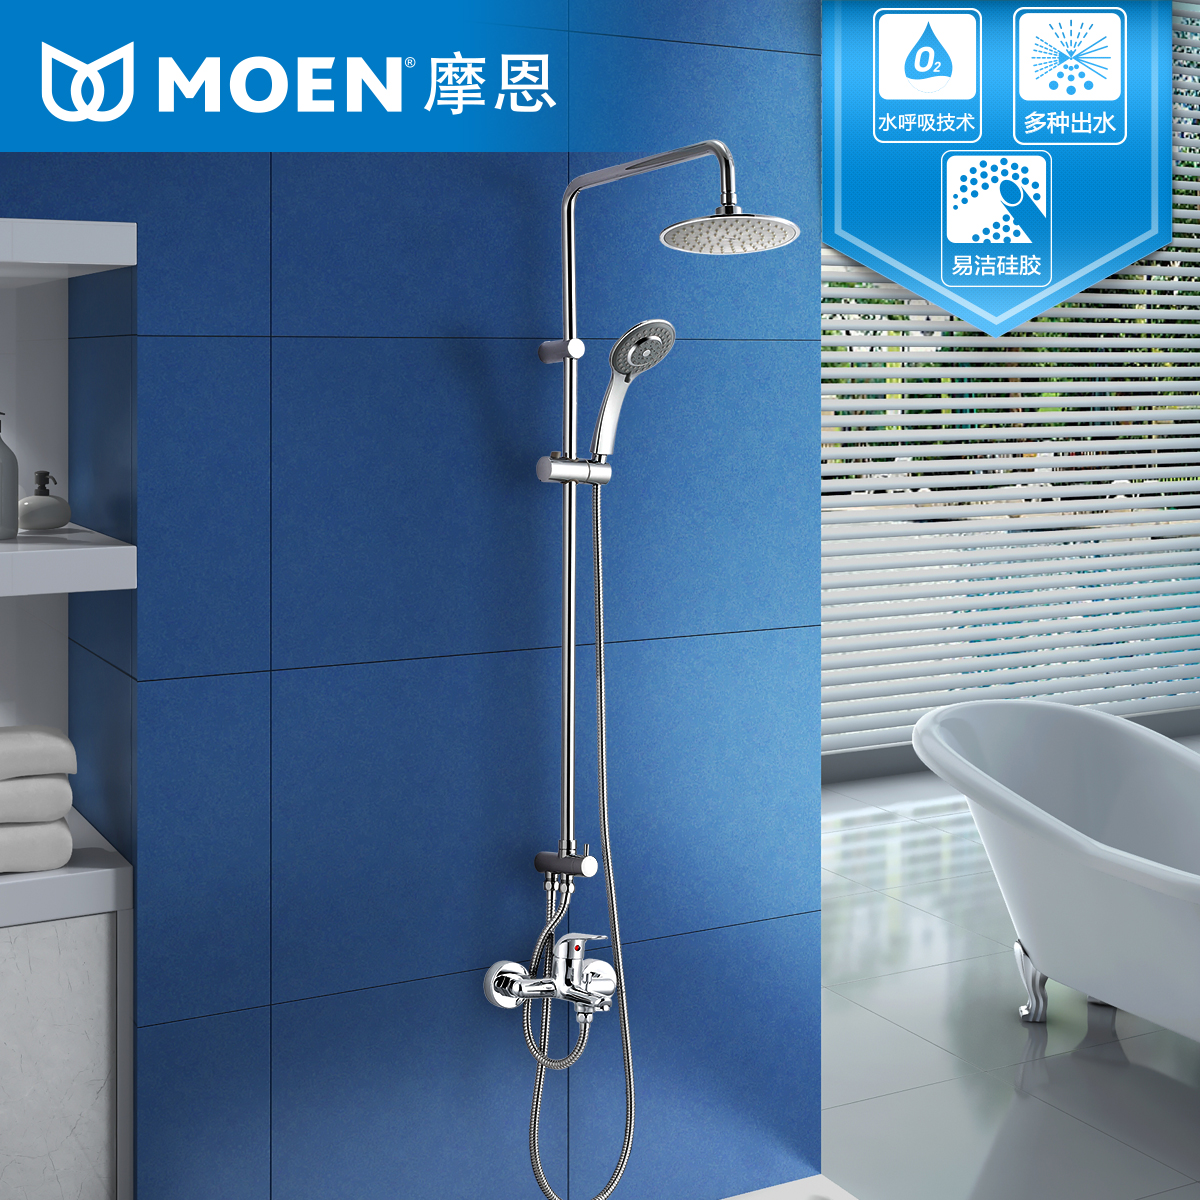 MOEN Moen shower set copper body hot and cold mixing valve bathtub ...